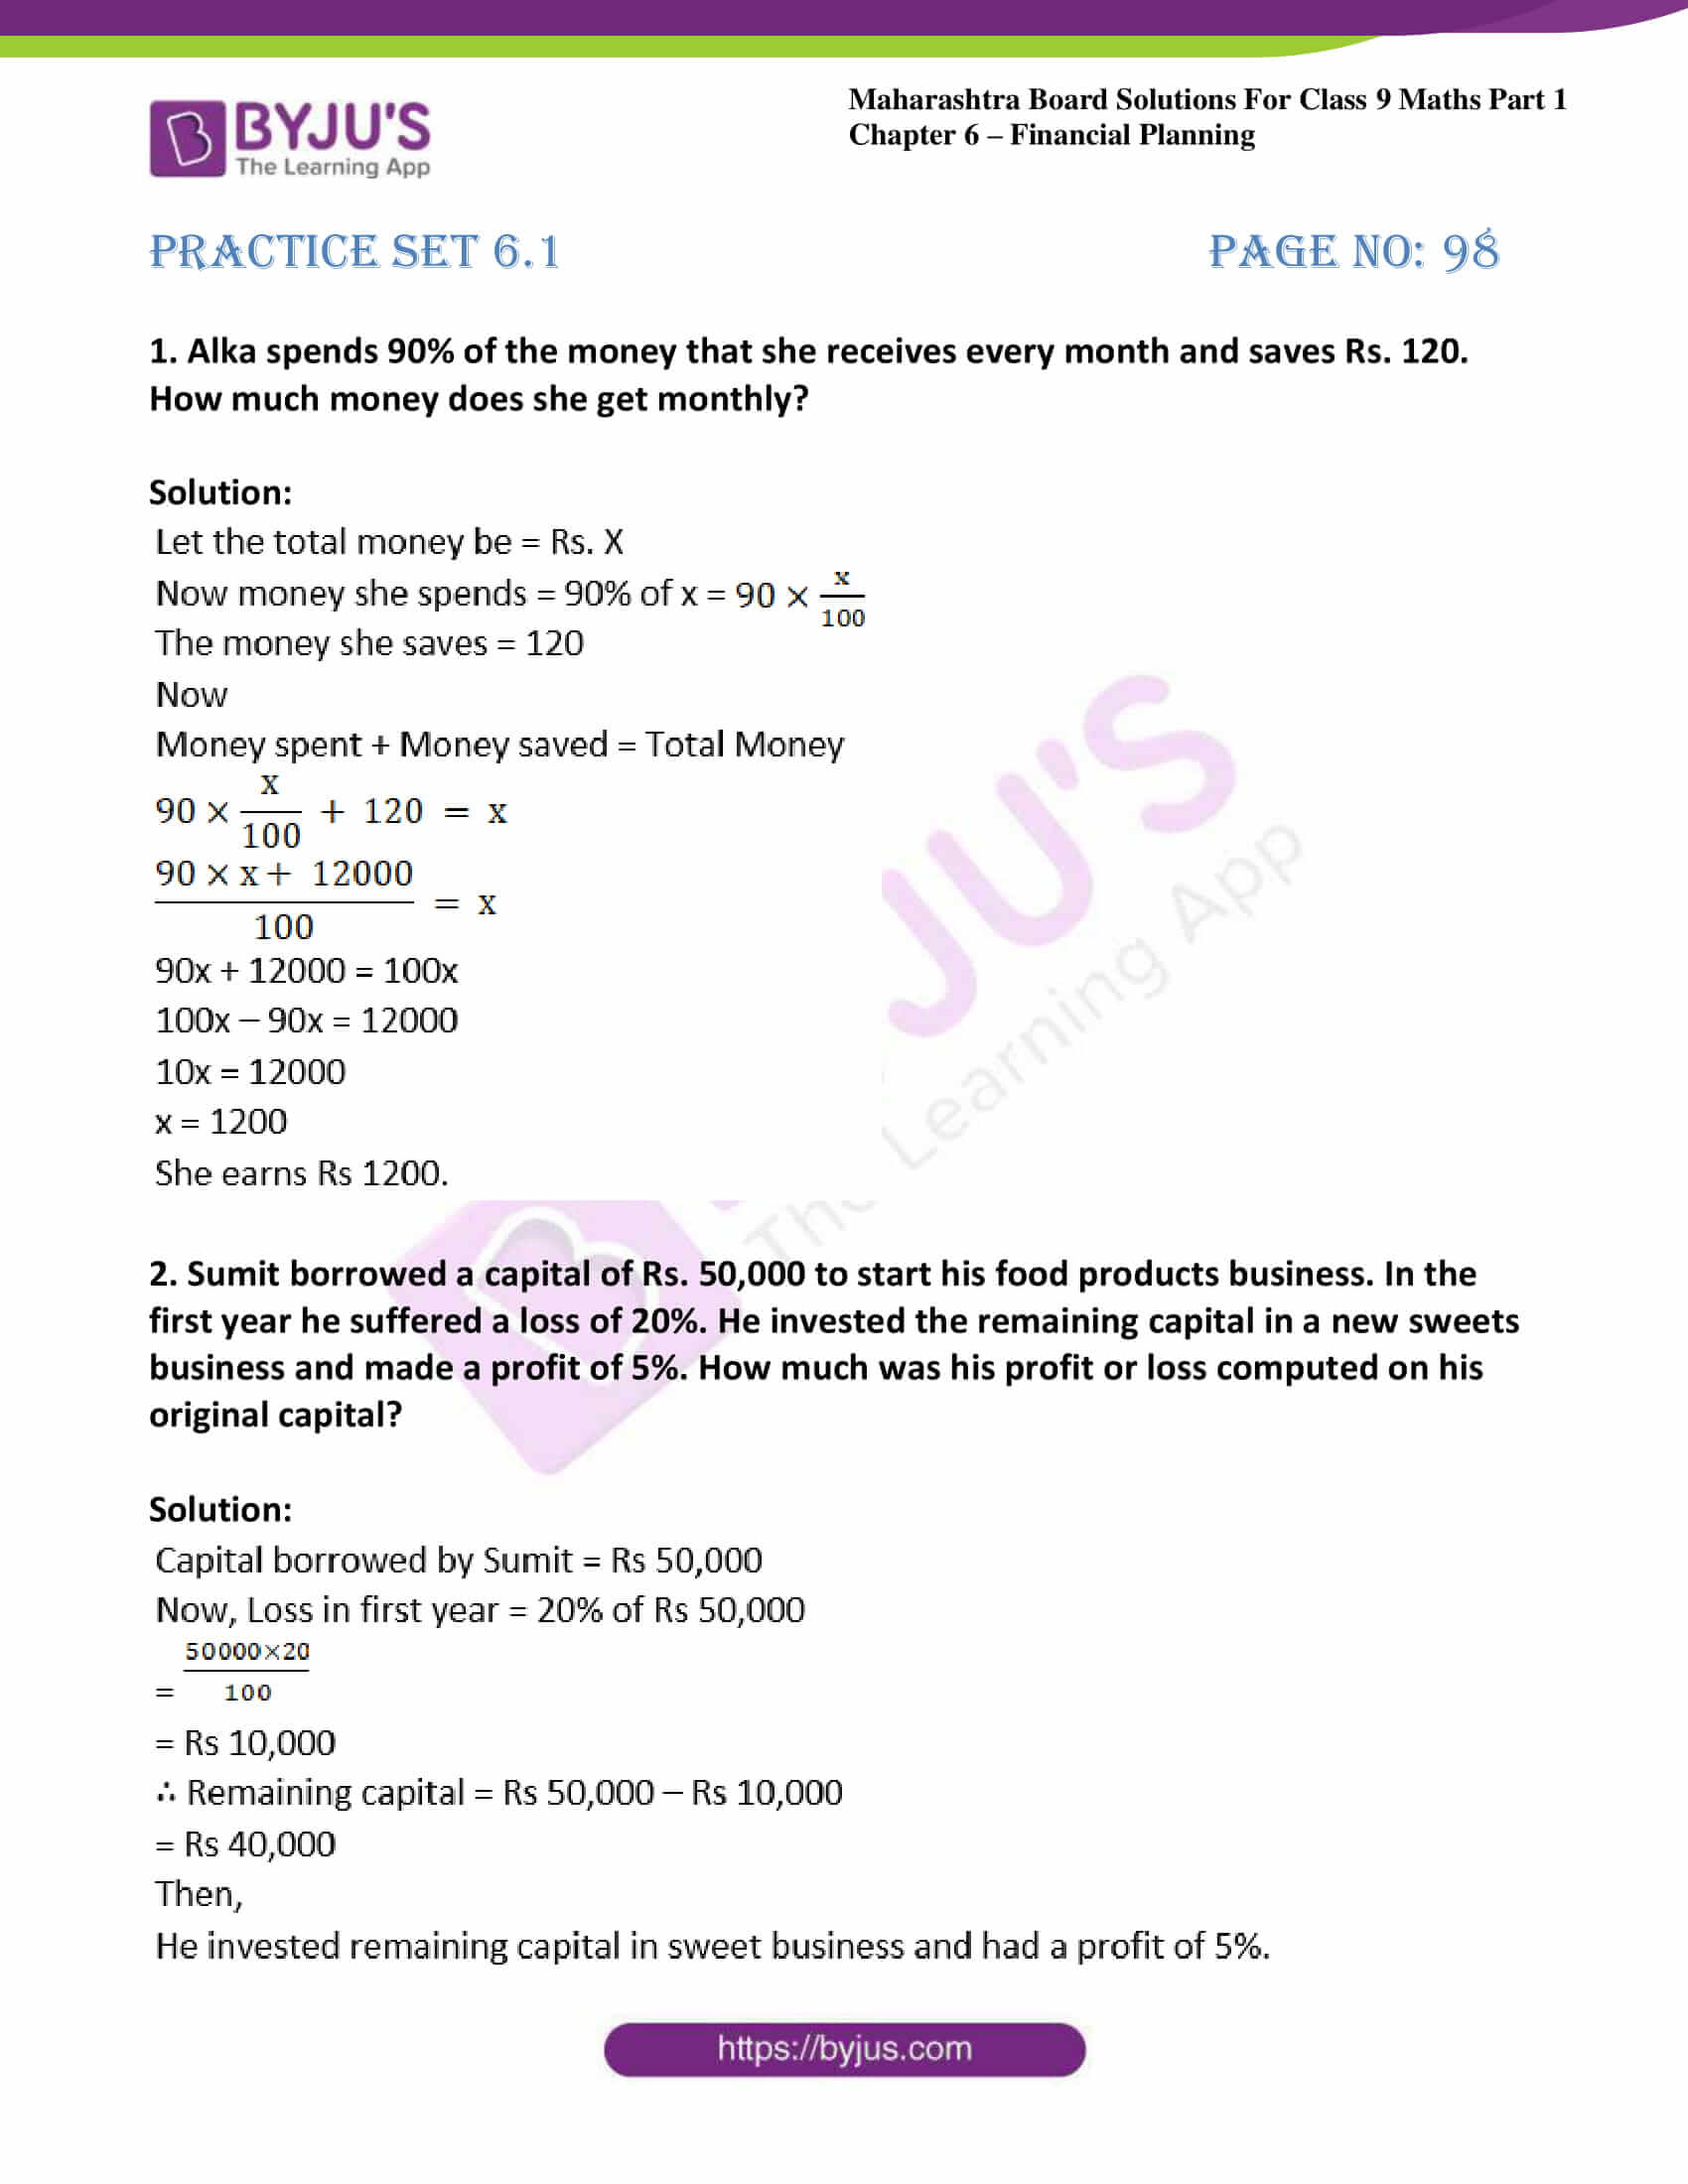 msbshse sol class 9 maths part 1 chapter 6 financial planing 01